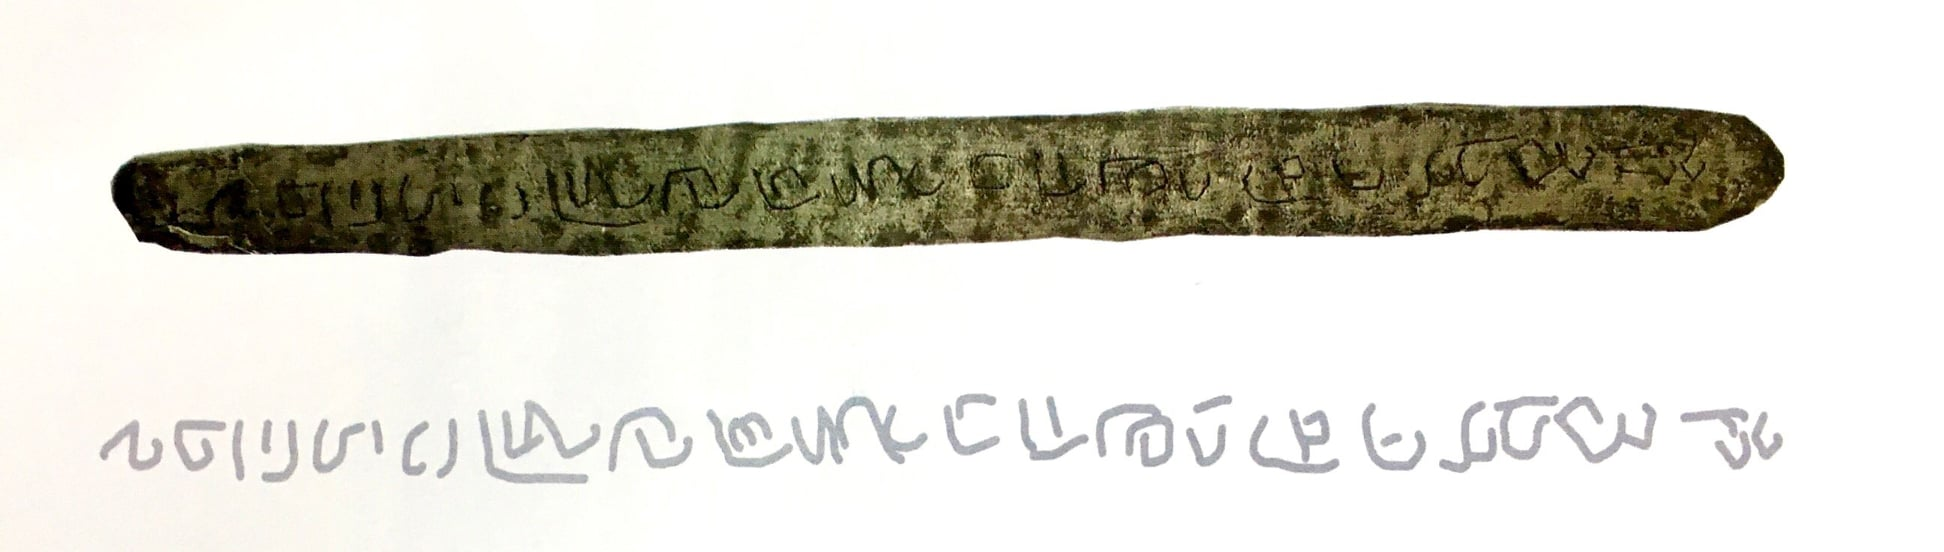 The Butuan Metal Paleograph - Evidences of Prehistoric Writing Systems in the Philippines